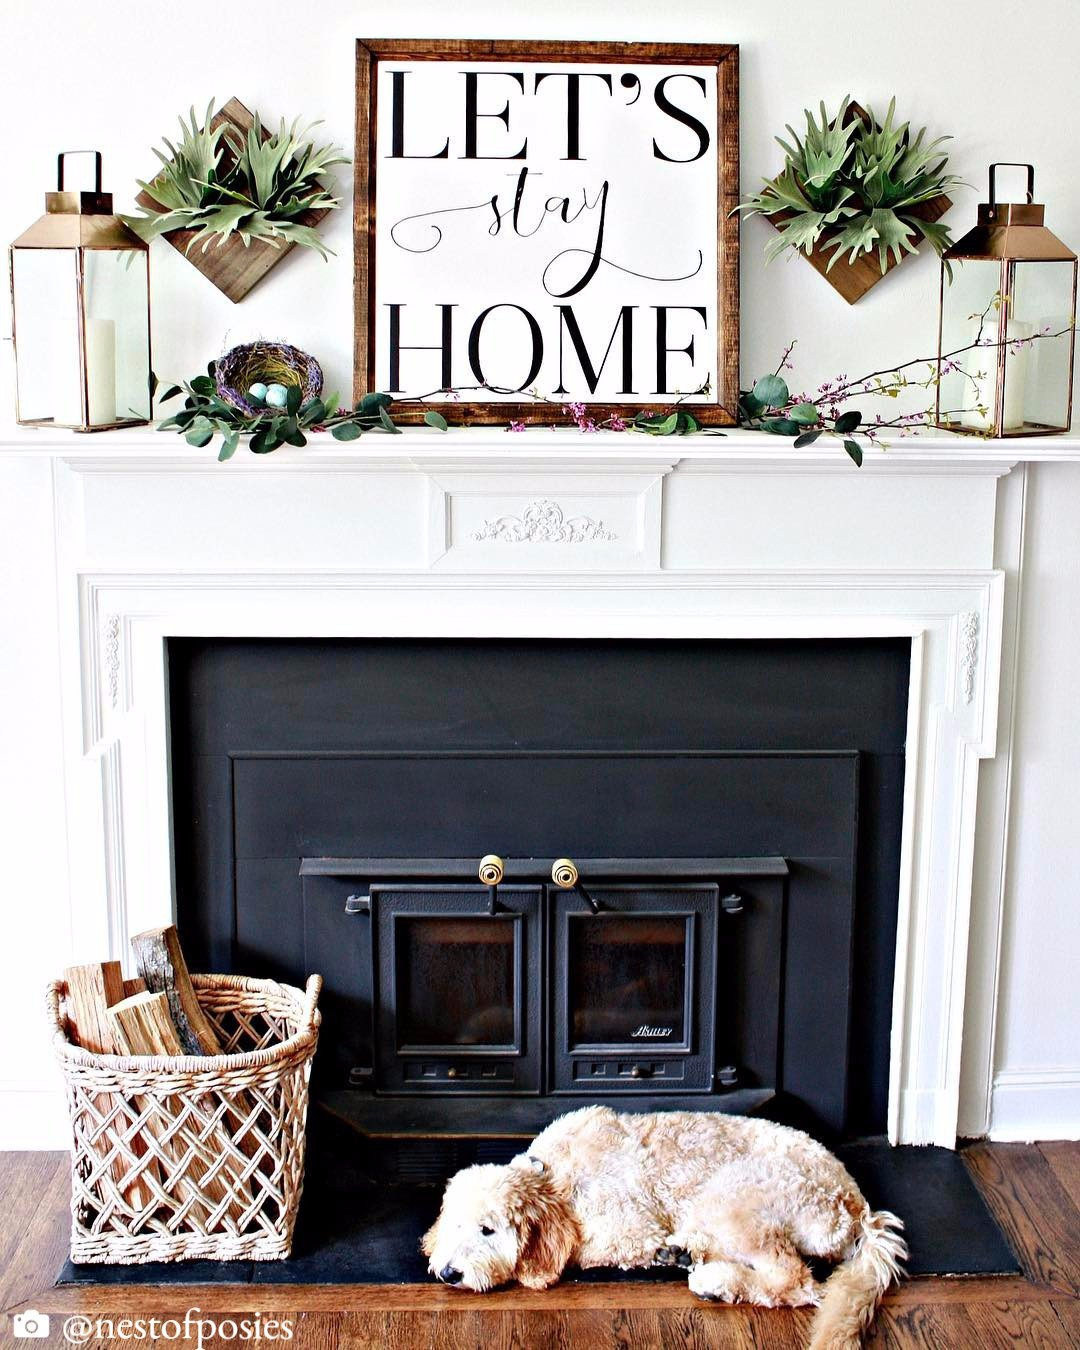 Wood Framed Signboard – Let's Stay Home